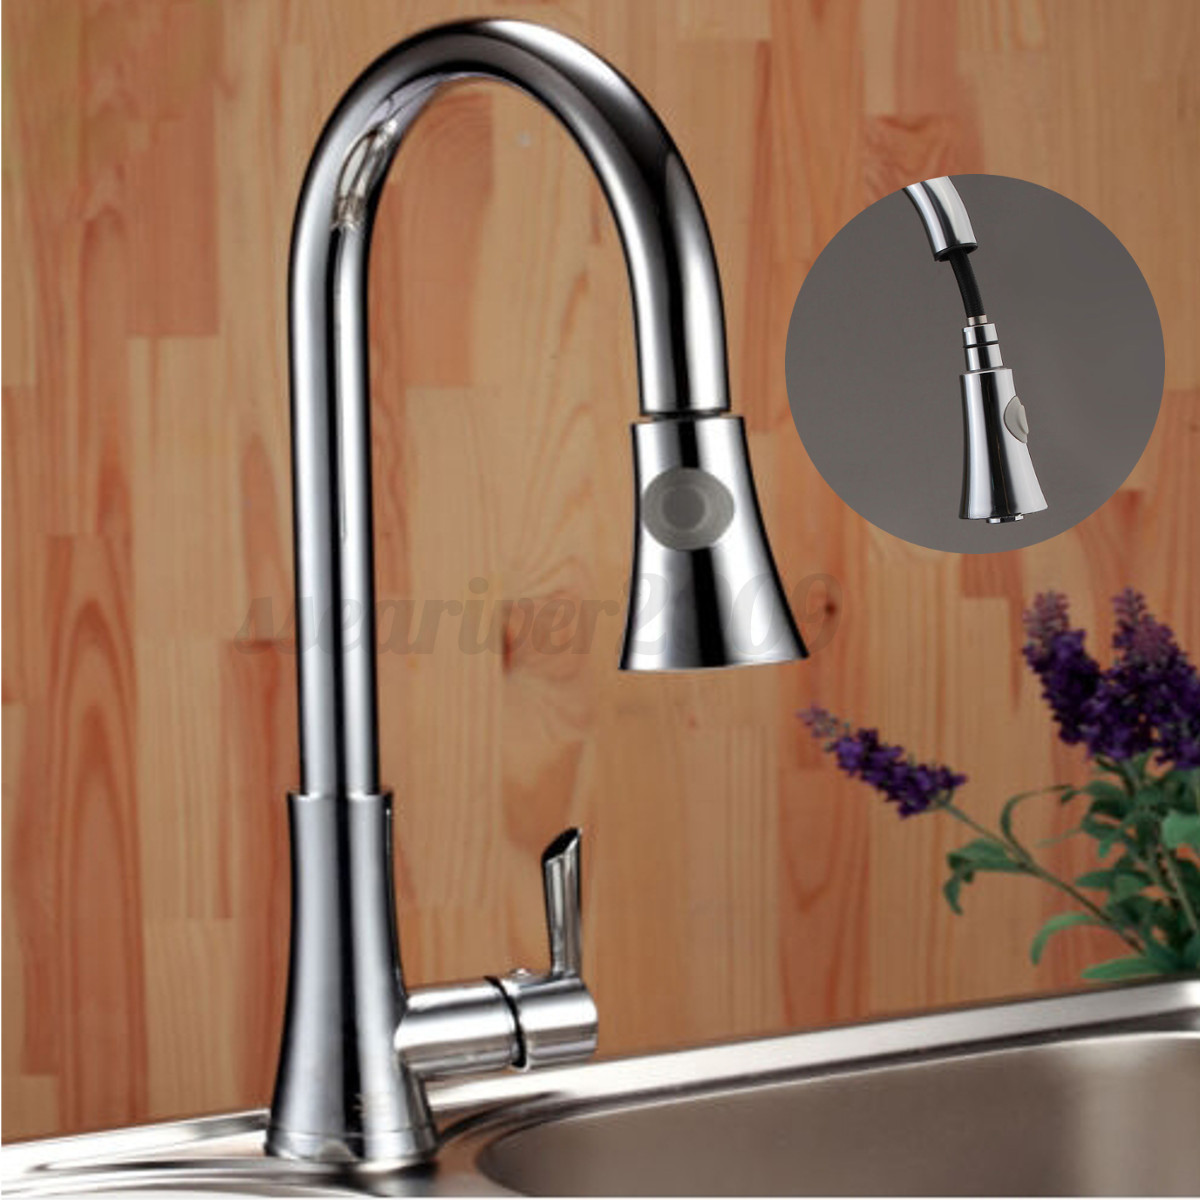 Kitchen Sink Faucet Pull Out Faucet Mixer Valve Single: 18'' Chrome Brass 360°Swivel Pull Out Kitchen Sink Single